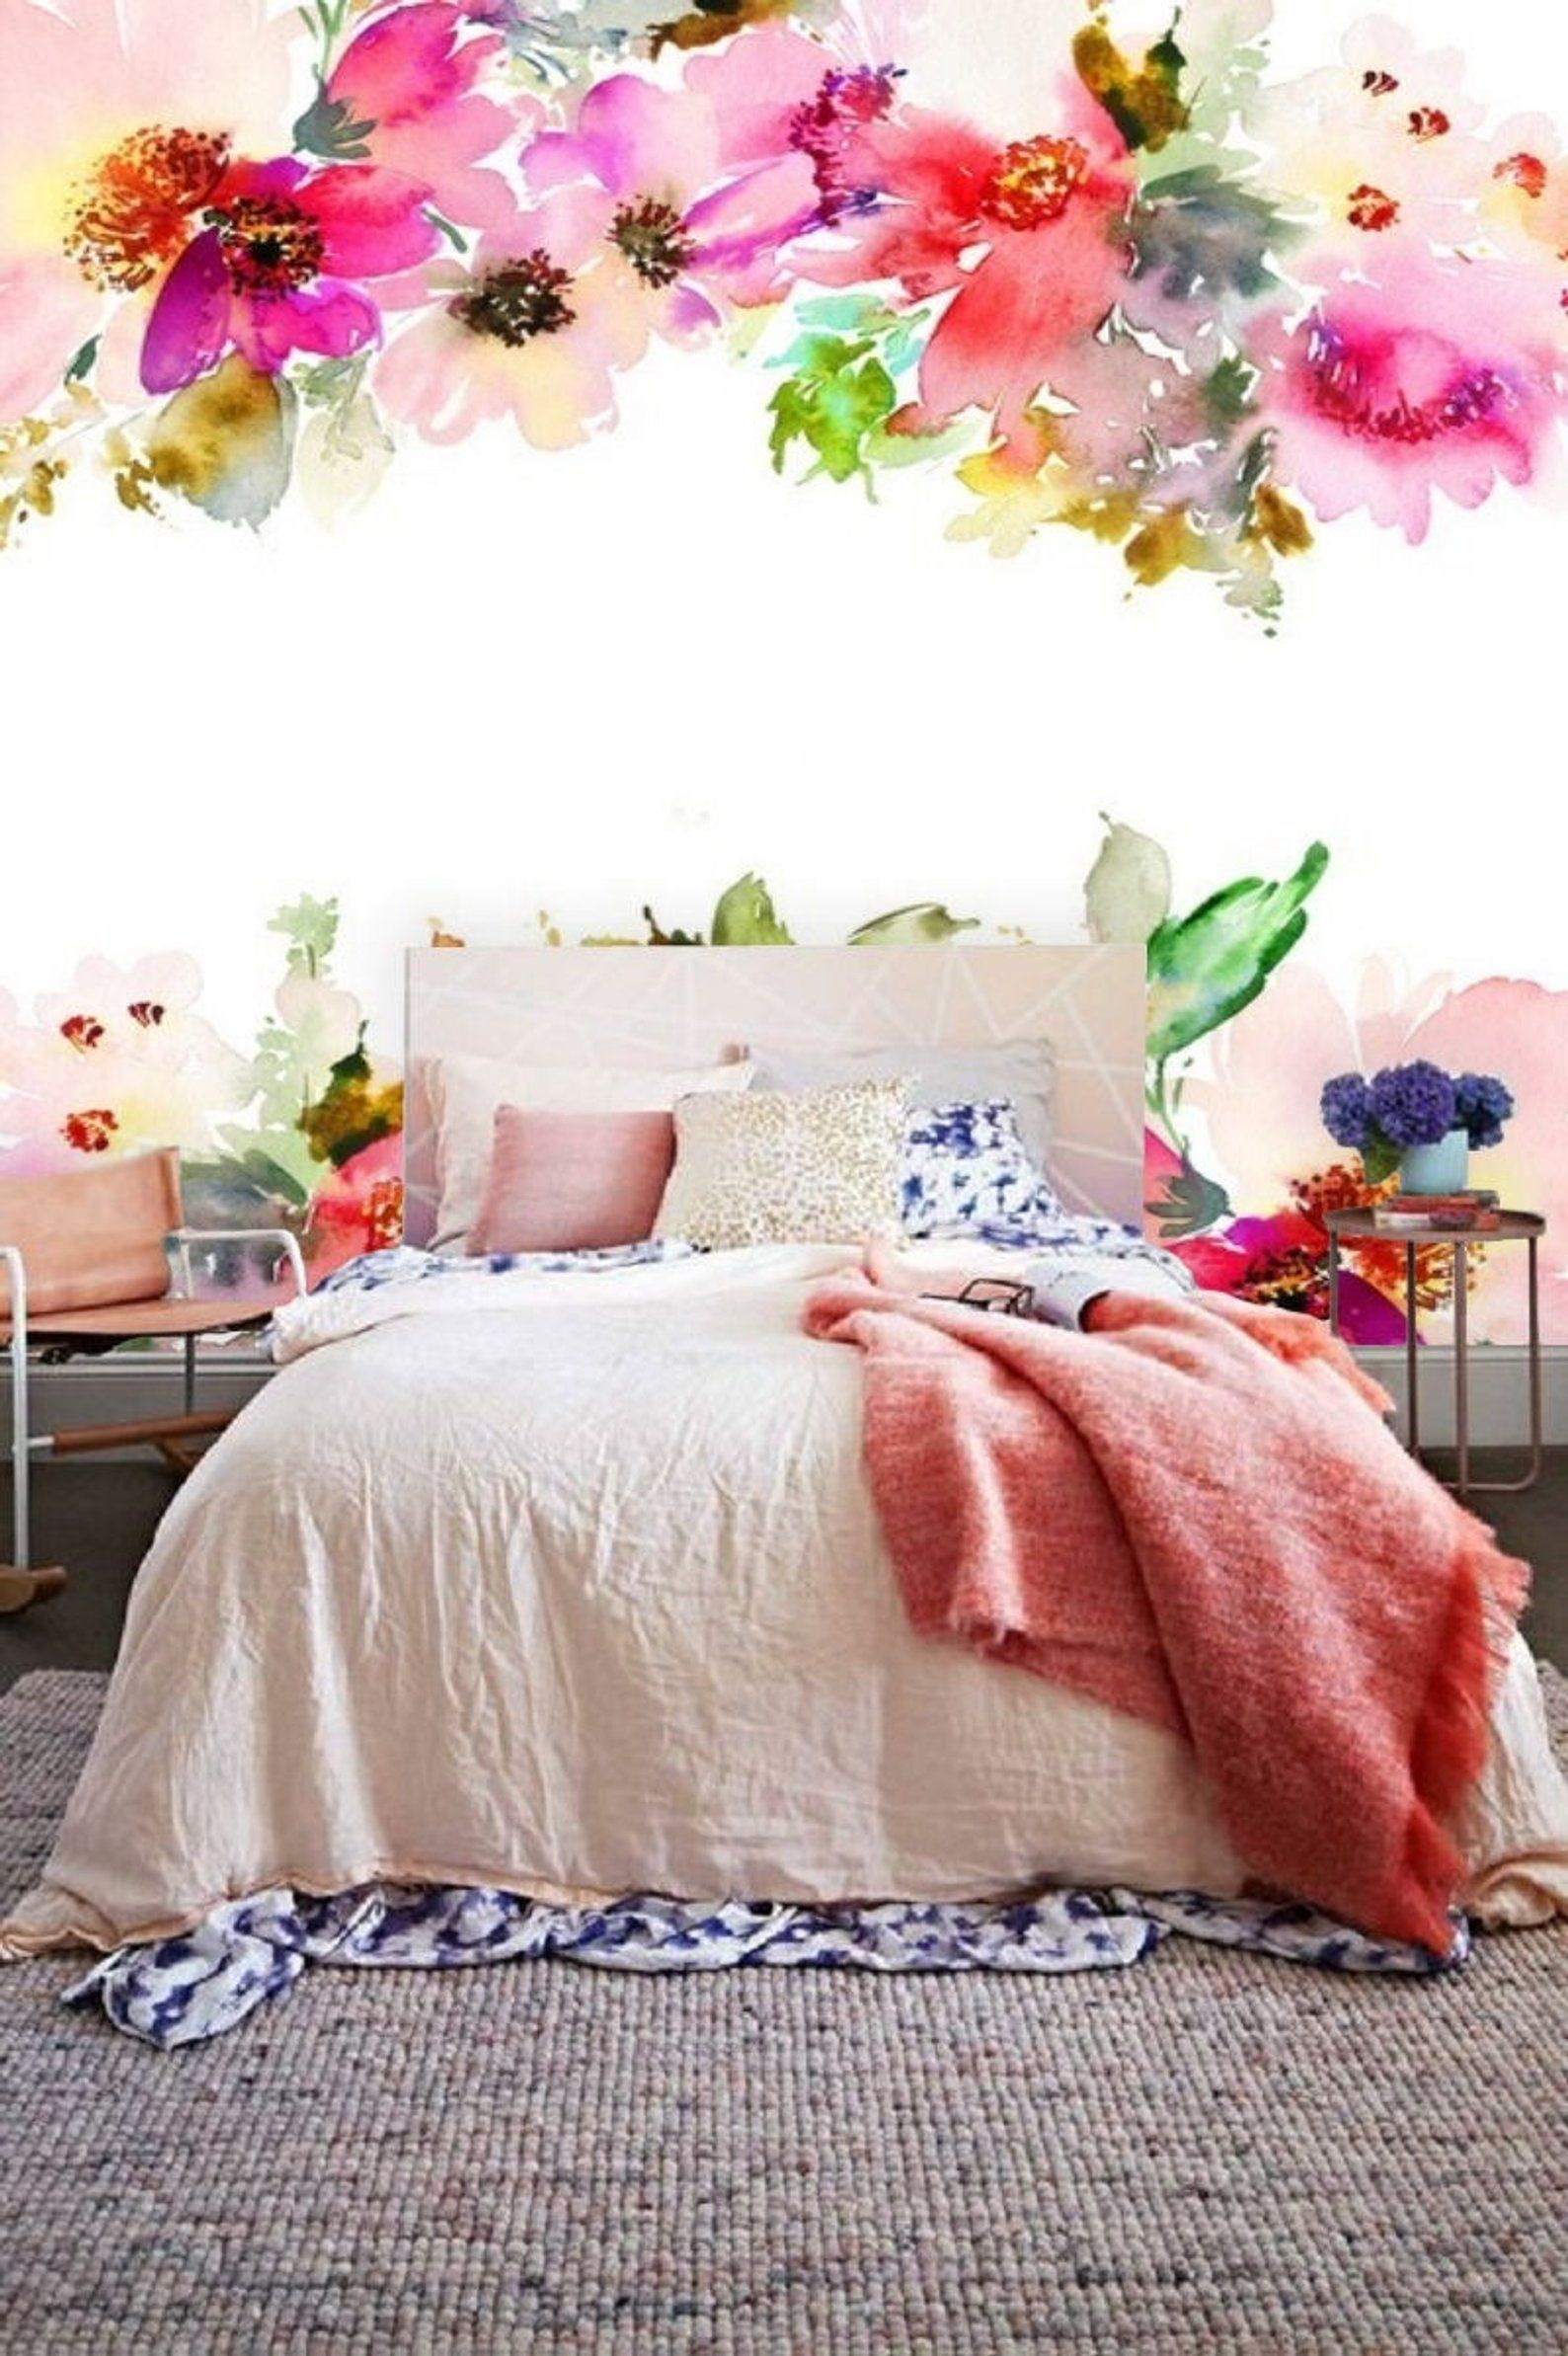 Floral wall mural, self adhesive removable wallpaper